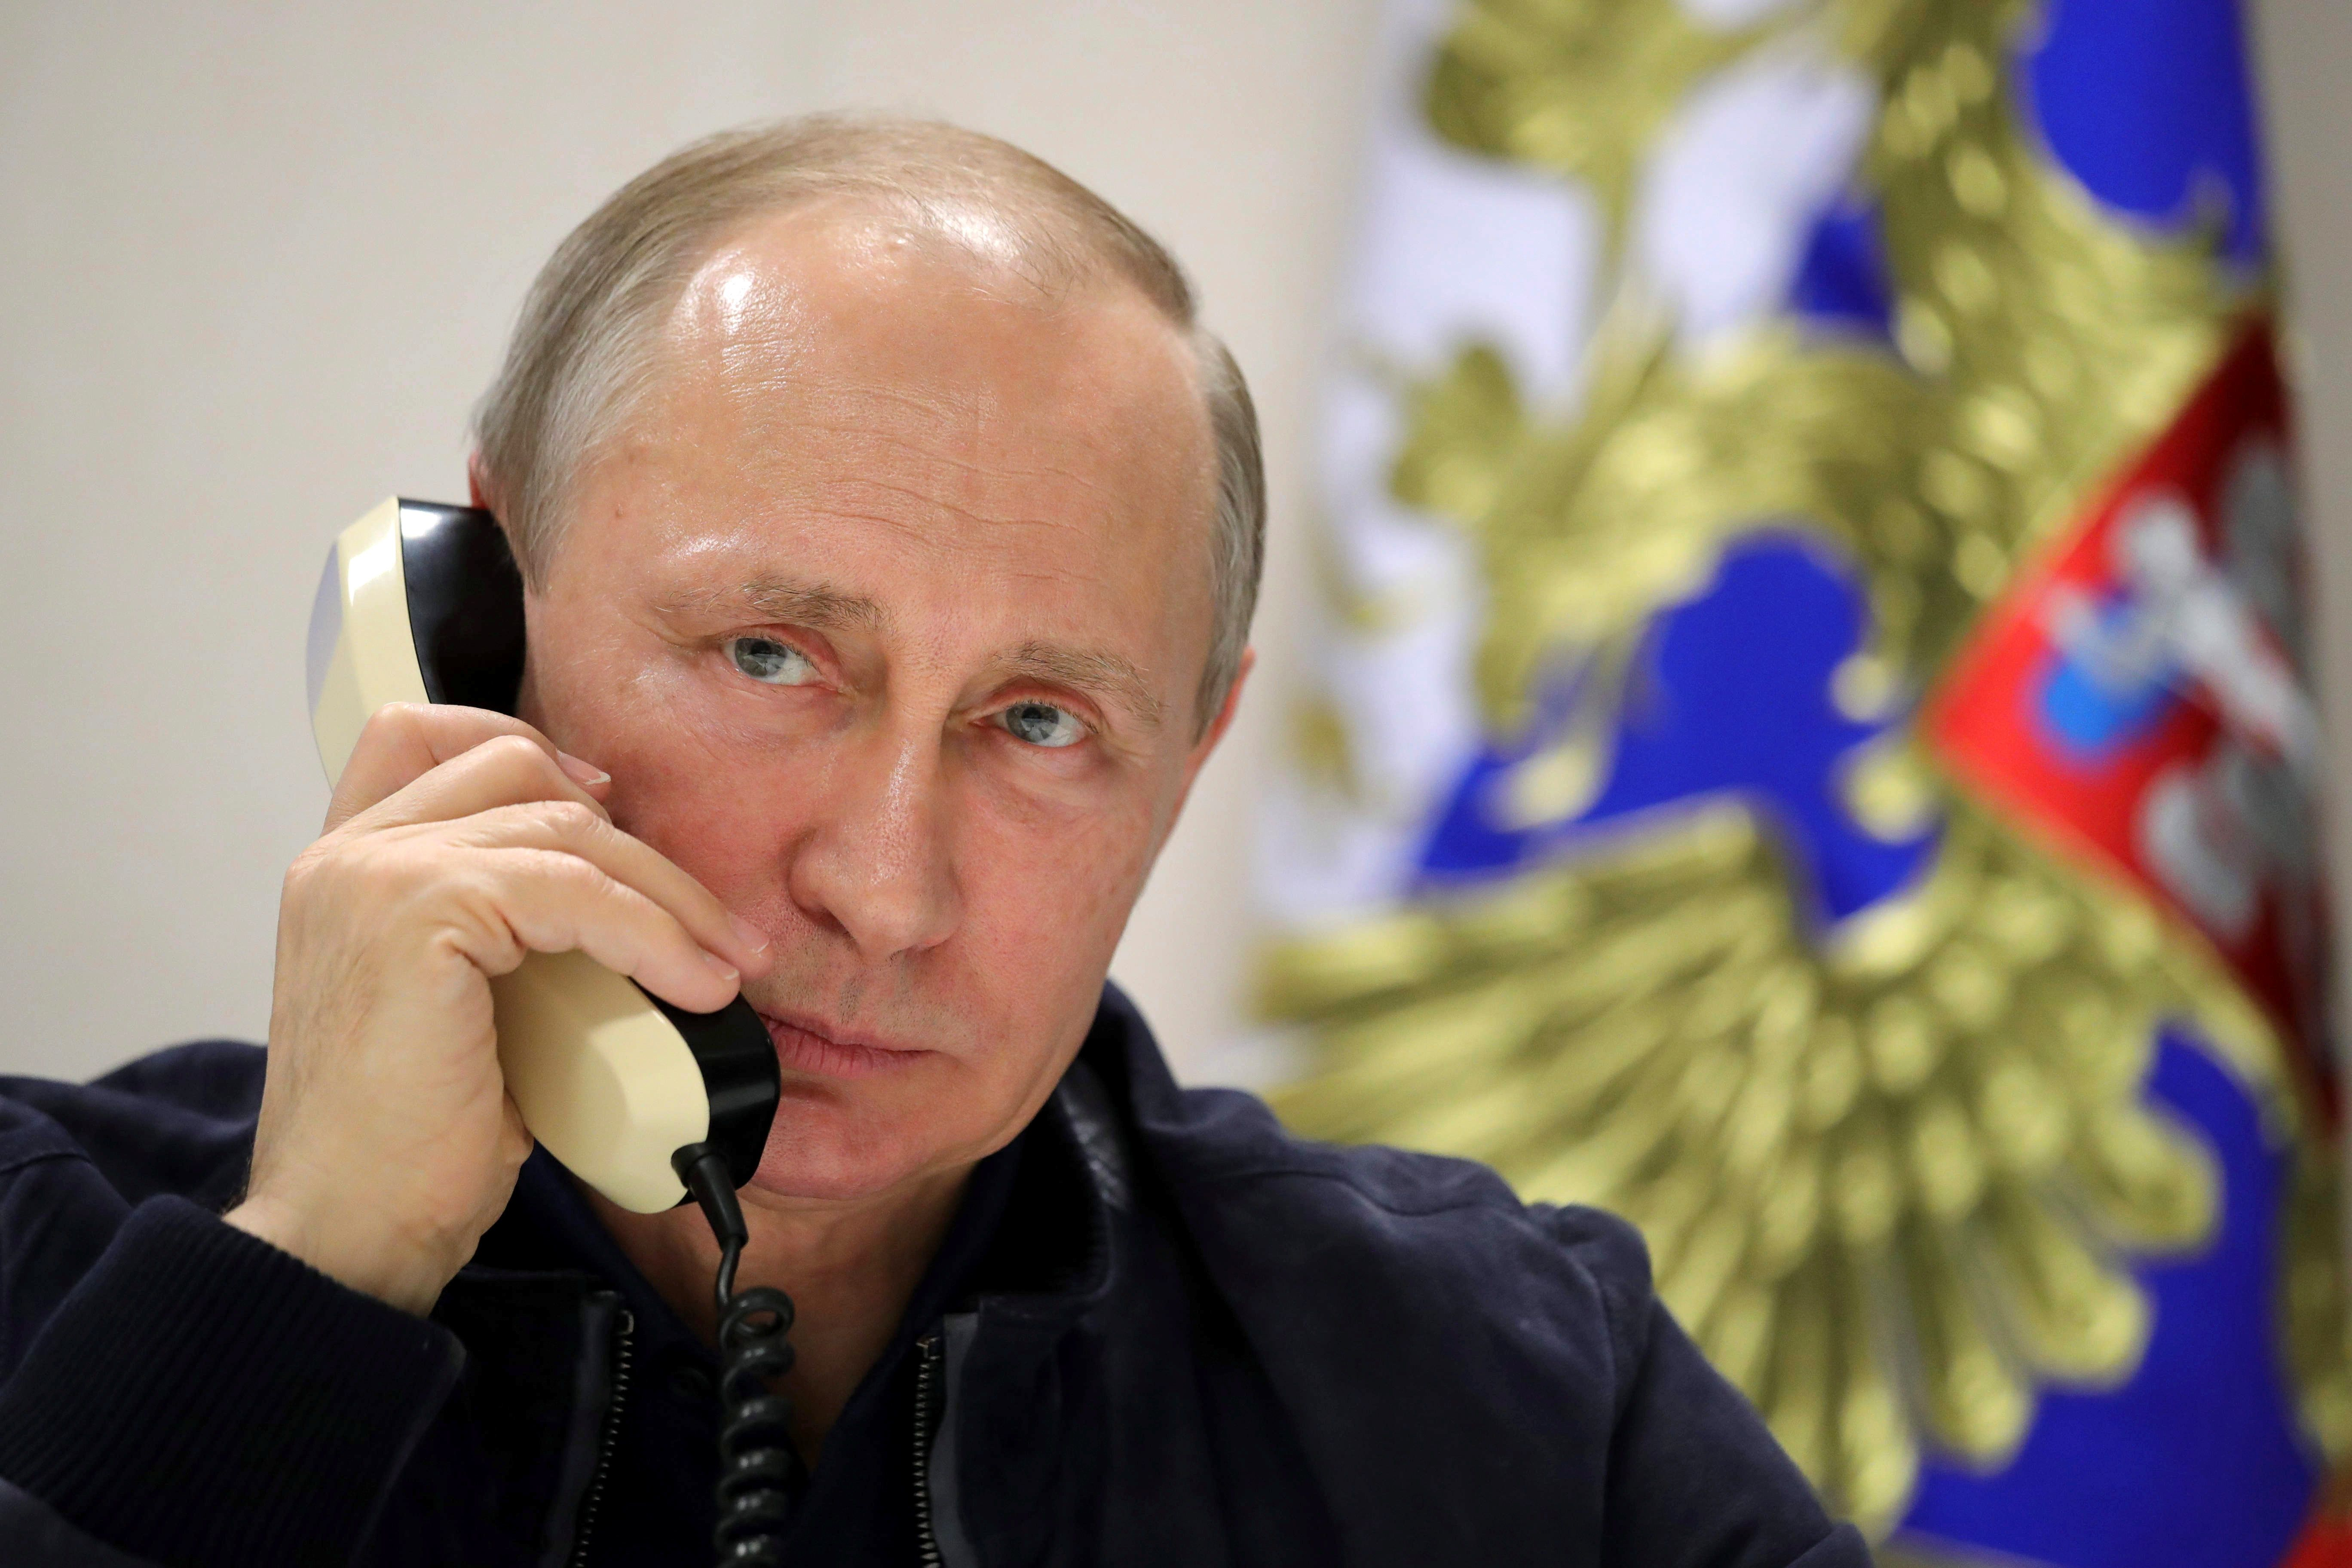 Russian President Vladimir Putin speaks over the phone with Turkish President Tayyip Erdogan while he inspects the work on the Turkish Stream gas pipeline project aboard the Pioneering Spirit pipeline-laying ship in the Black Sea near Anapa, Russia, June 23, 2017. Sputnik/Mikhail Klimentyev/Kremlin via REUTERS ATTENTION EDITORS - THIS IMAGE WAS PROVIDED BY A THIRD PARTY.